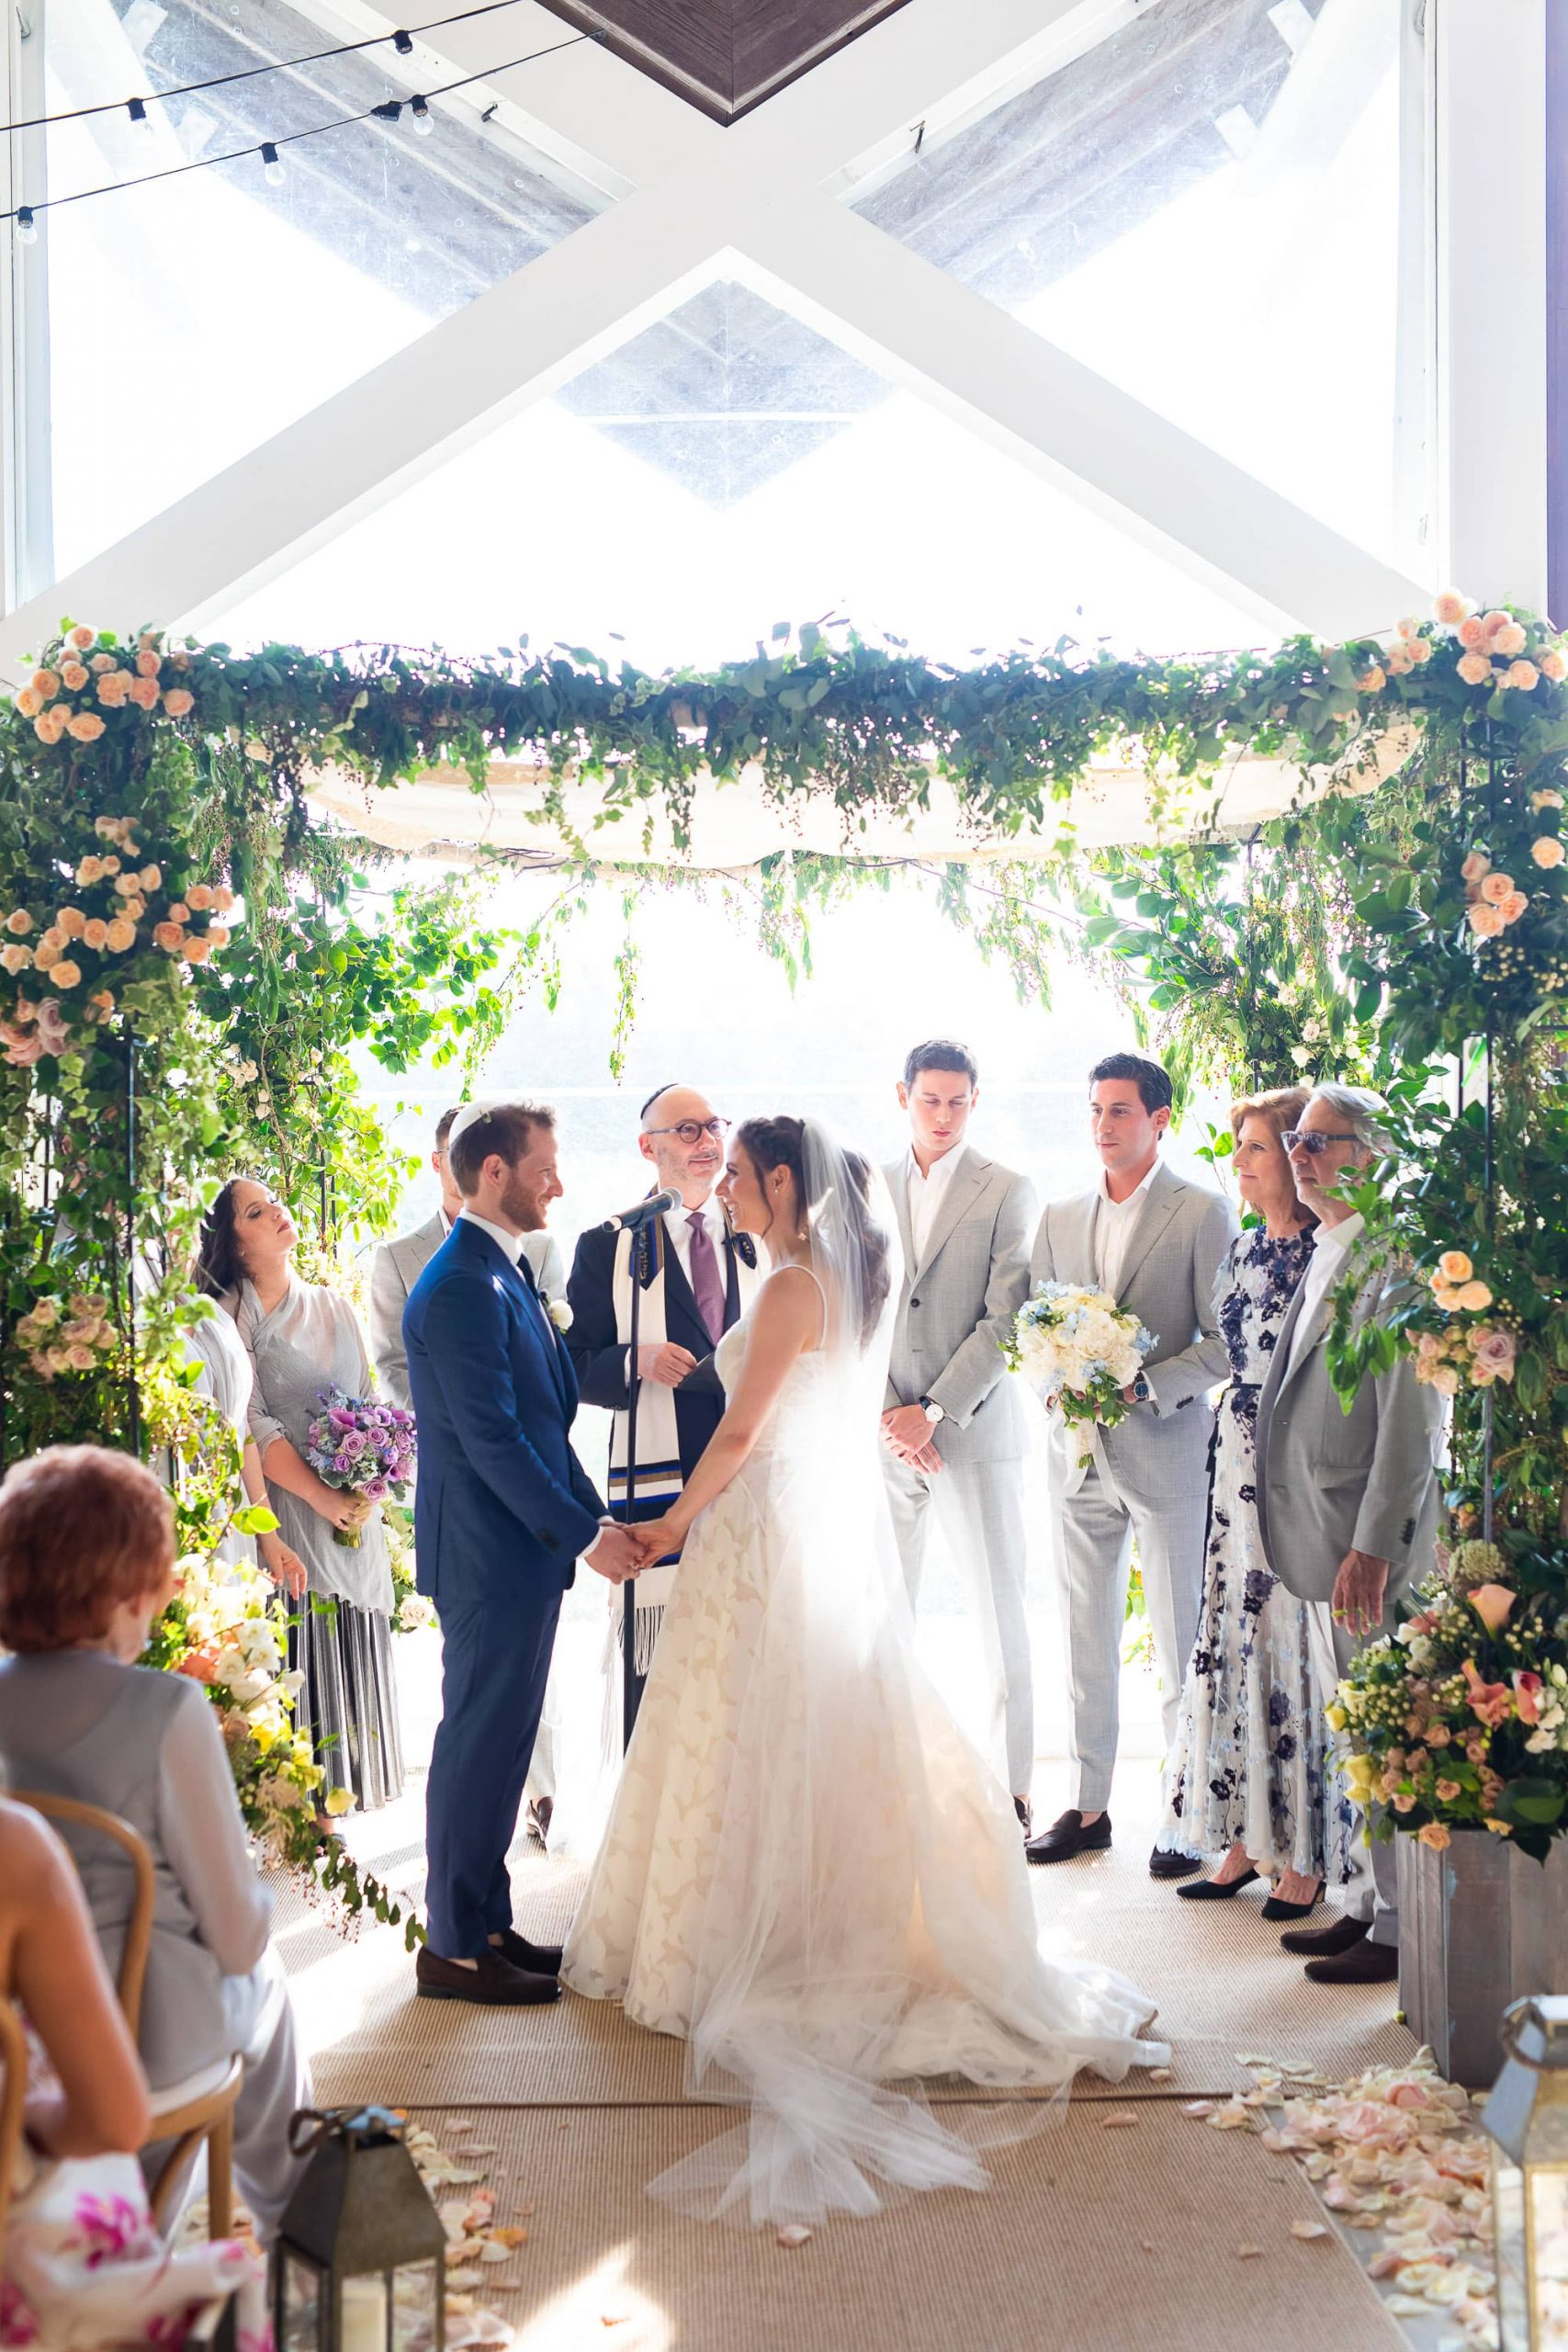 Bride and groom at Jewish ceremony at this Hamptons wedding weekend held at The Parrish Museum | Photo by Roey Yohai Studio